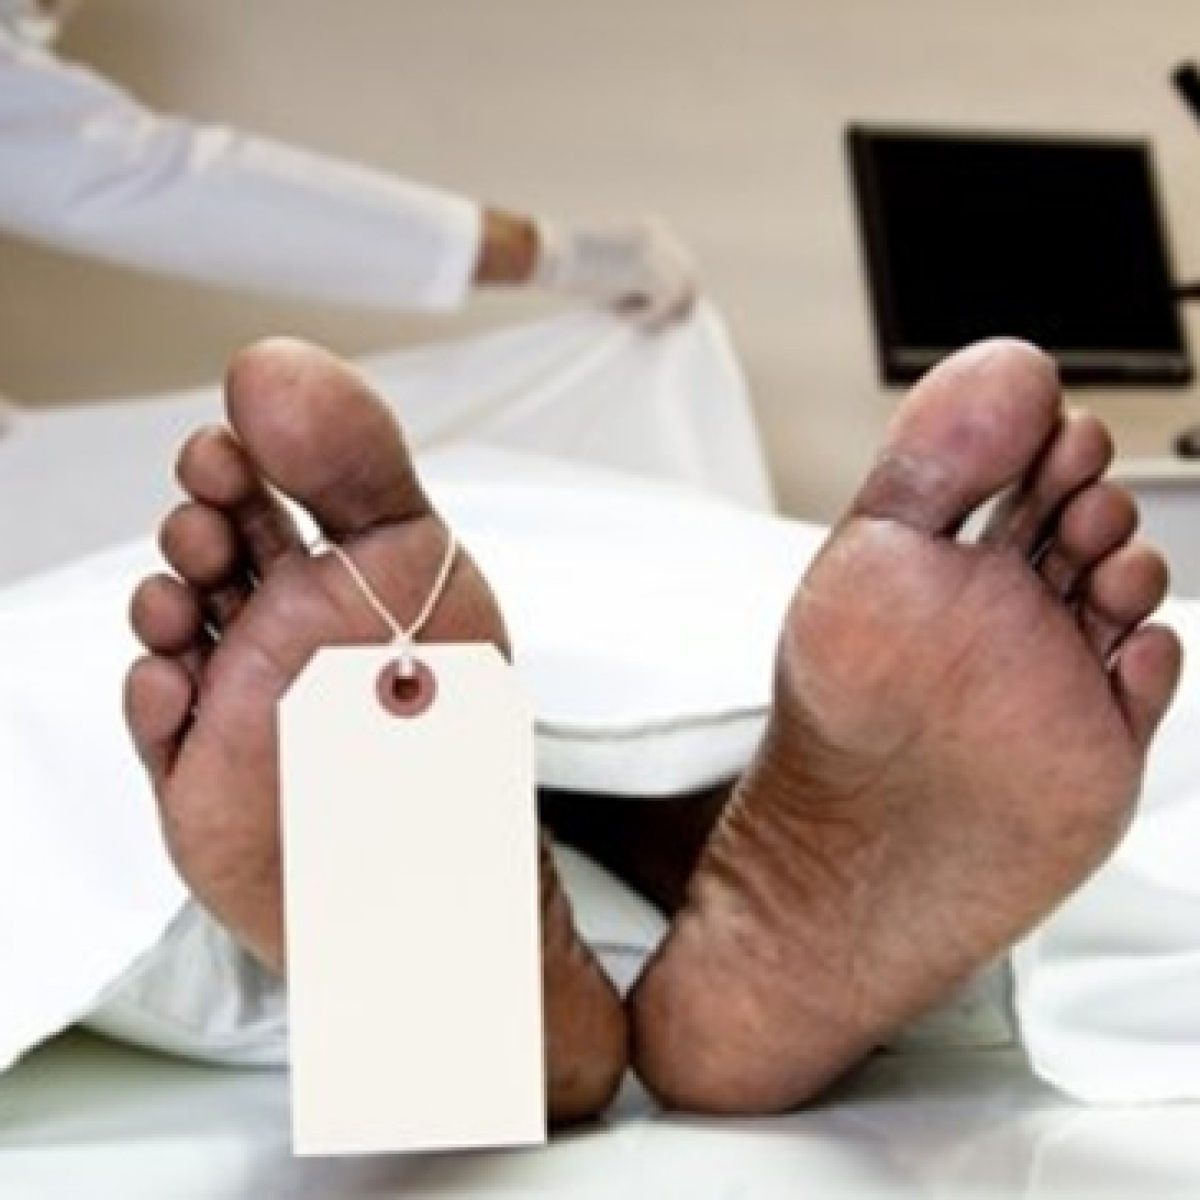 Mumbai: Patient cremated as unclaimed, family learns of it ten days later